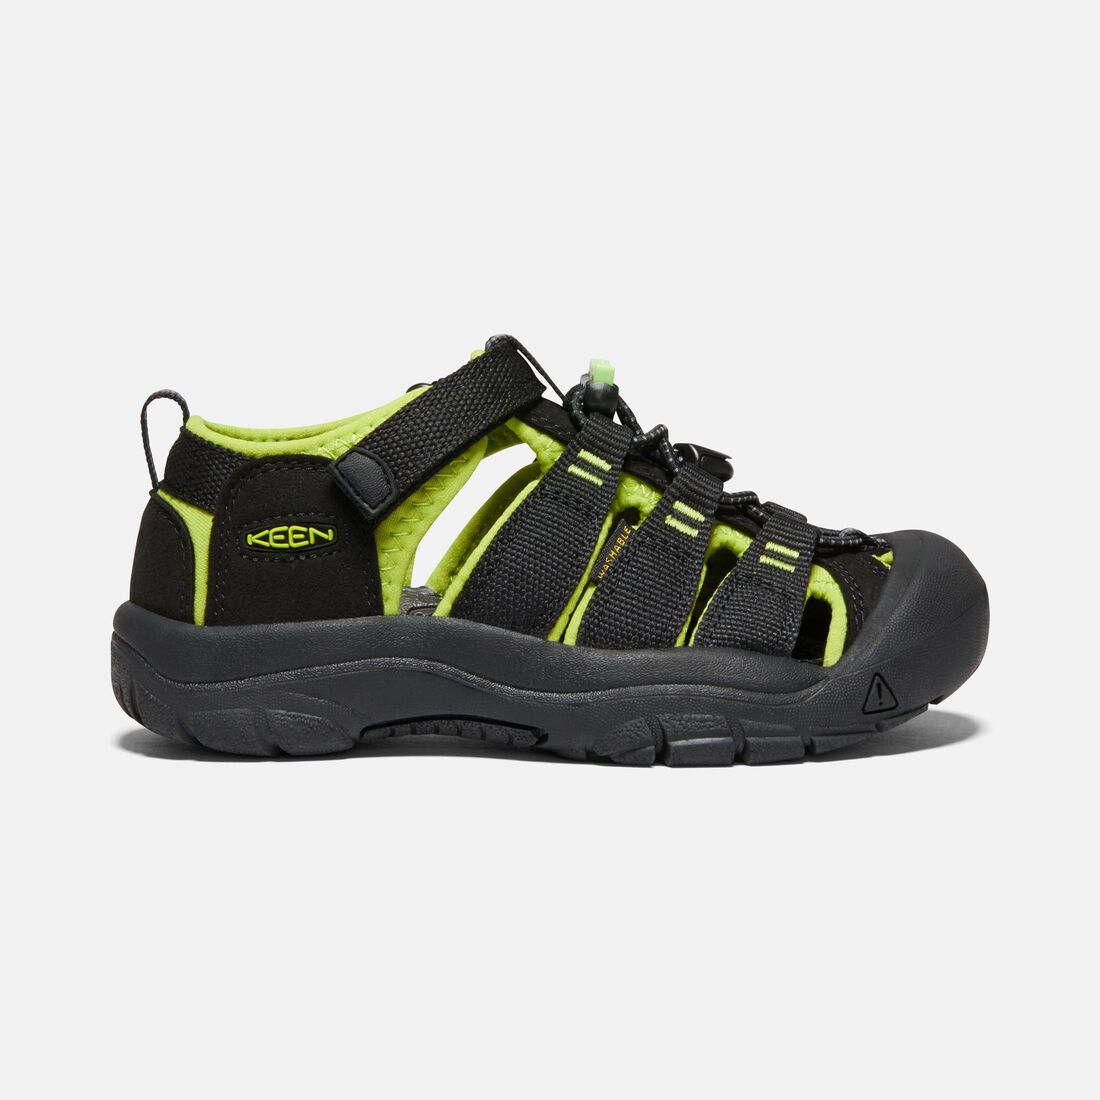 Big Kids' Newport H2 in Black/Lime Green - large view.